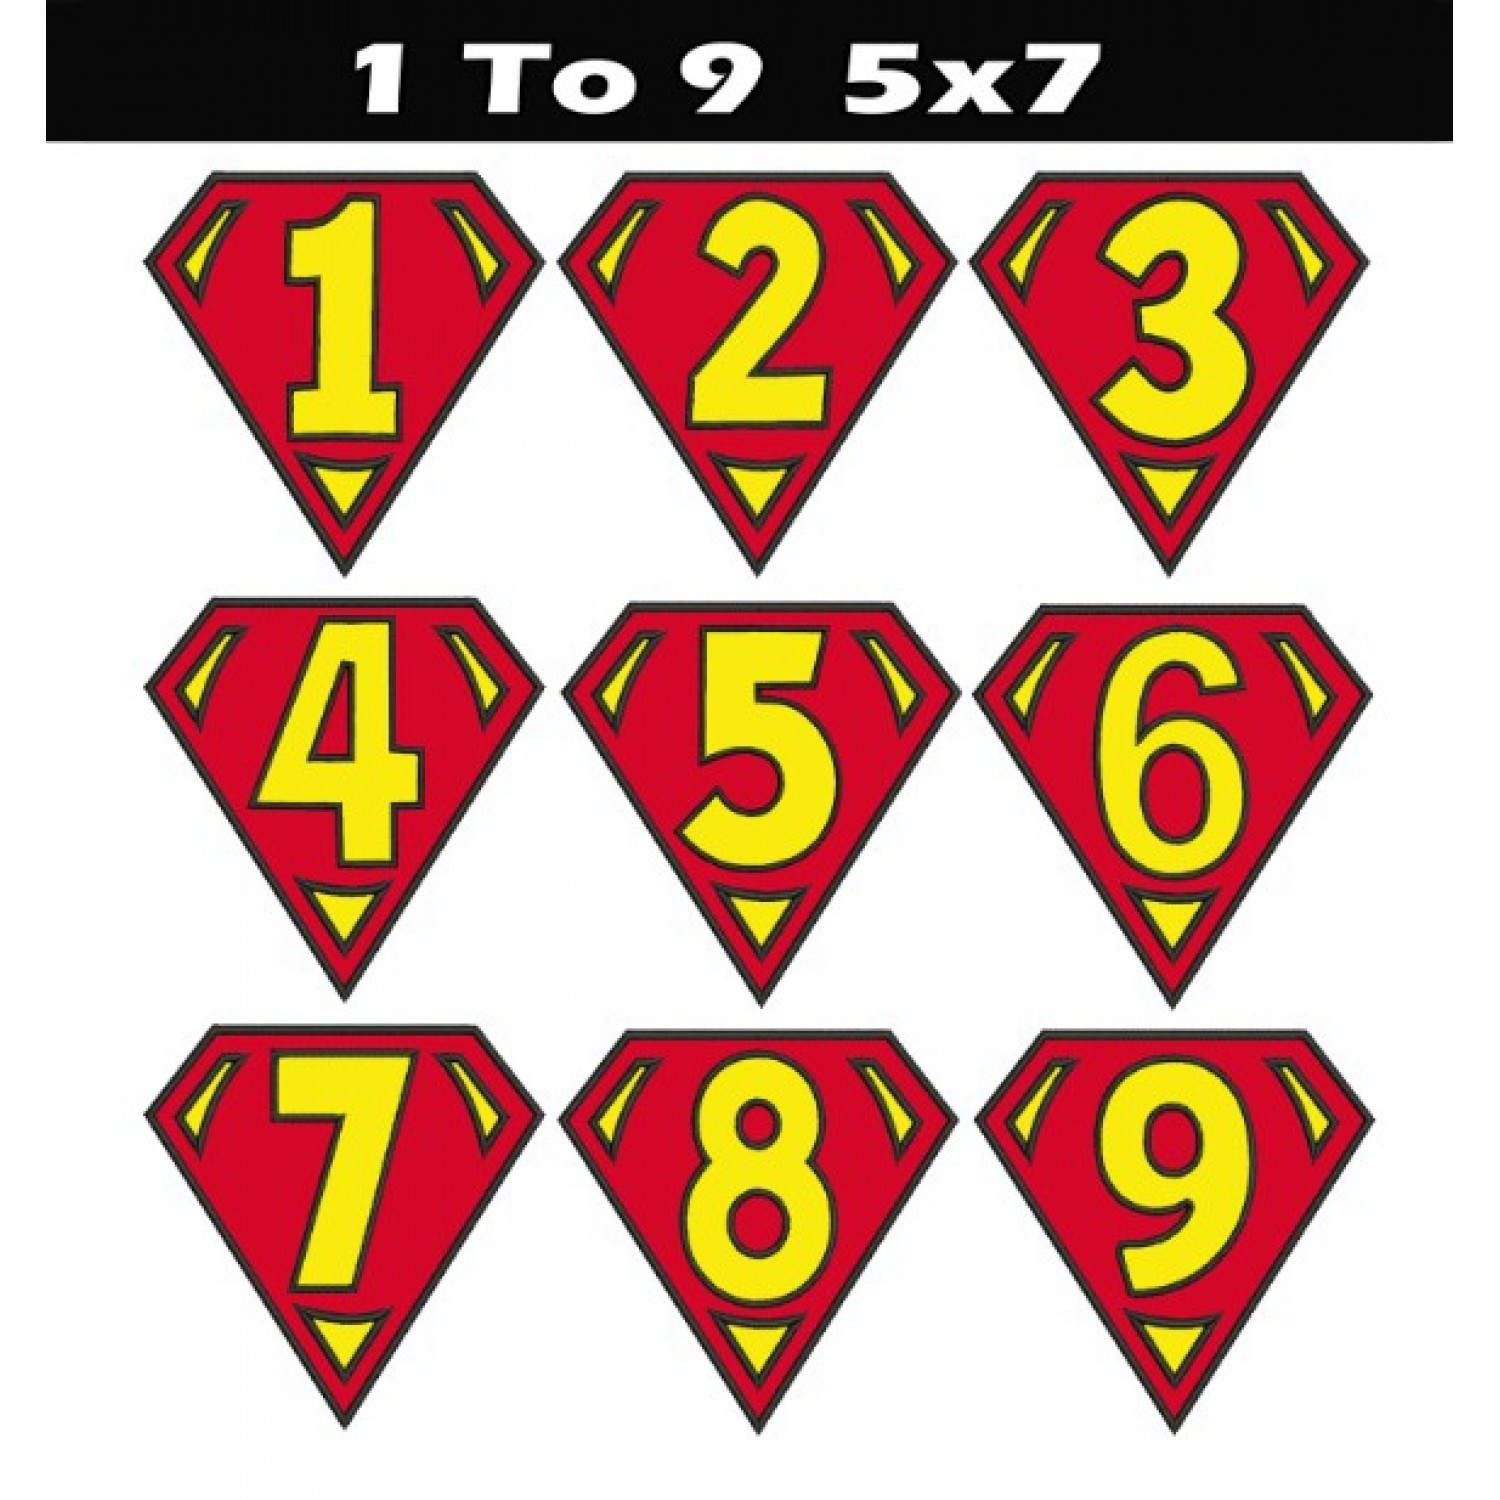 Superman logo numbers 5x7 applique